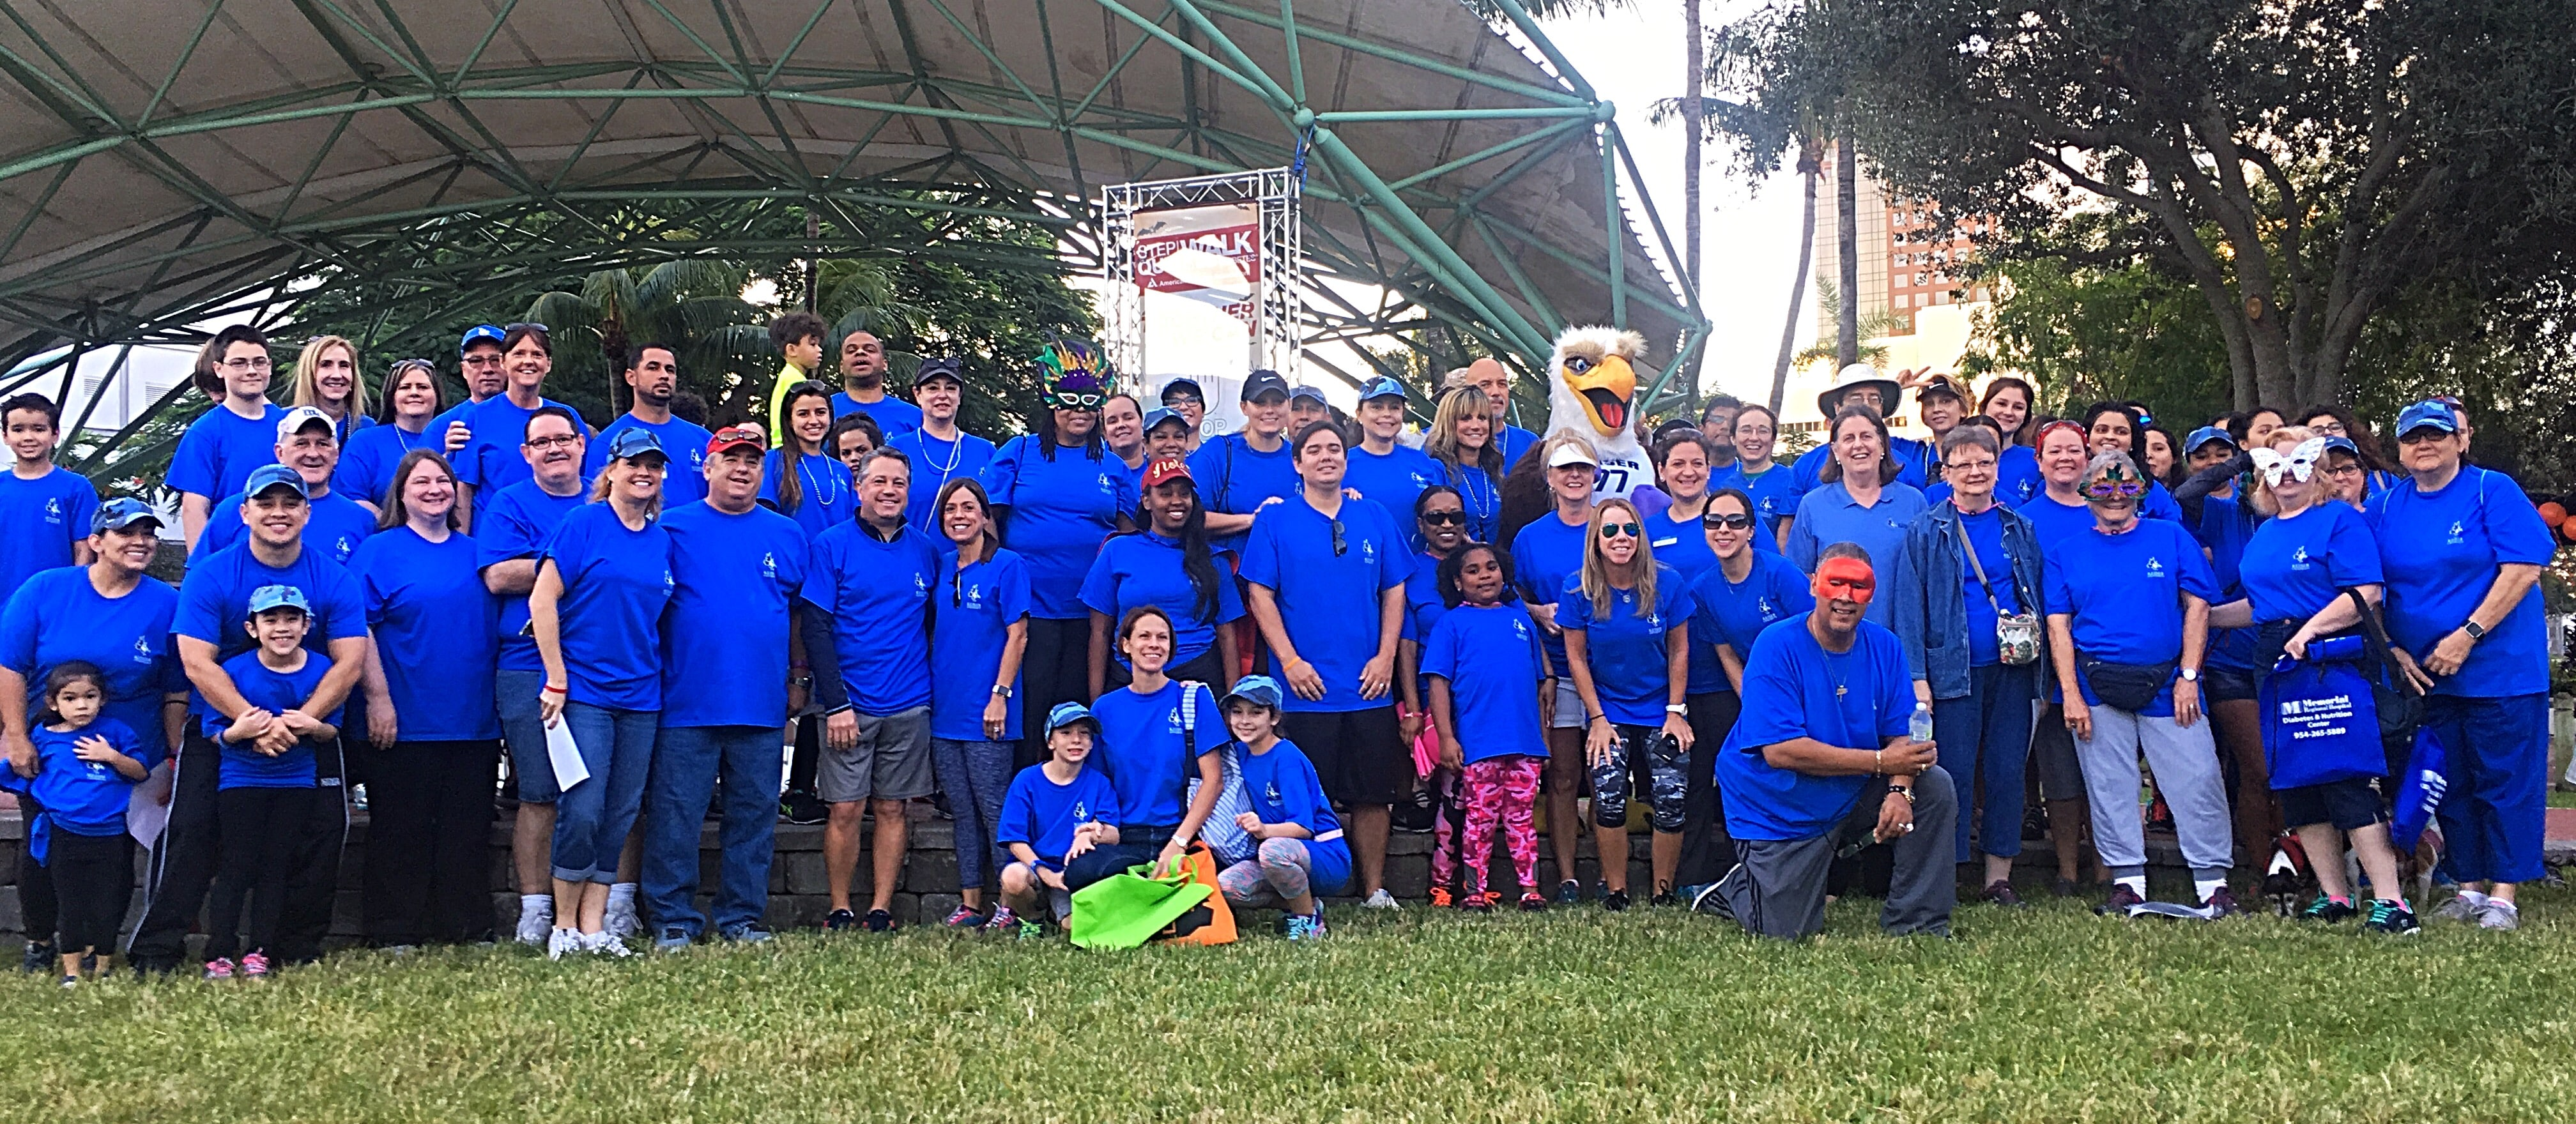 Keiser University's Chancellor Dr. Arthur Keiser Serves as Chairman of the ADA's Step Out: Walk to Stop Diabetes in South Florida